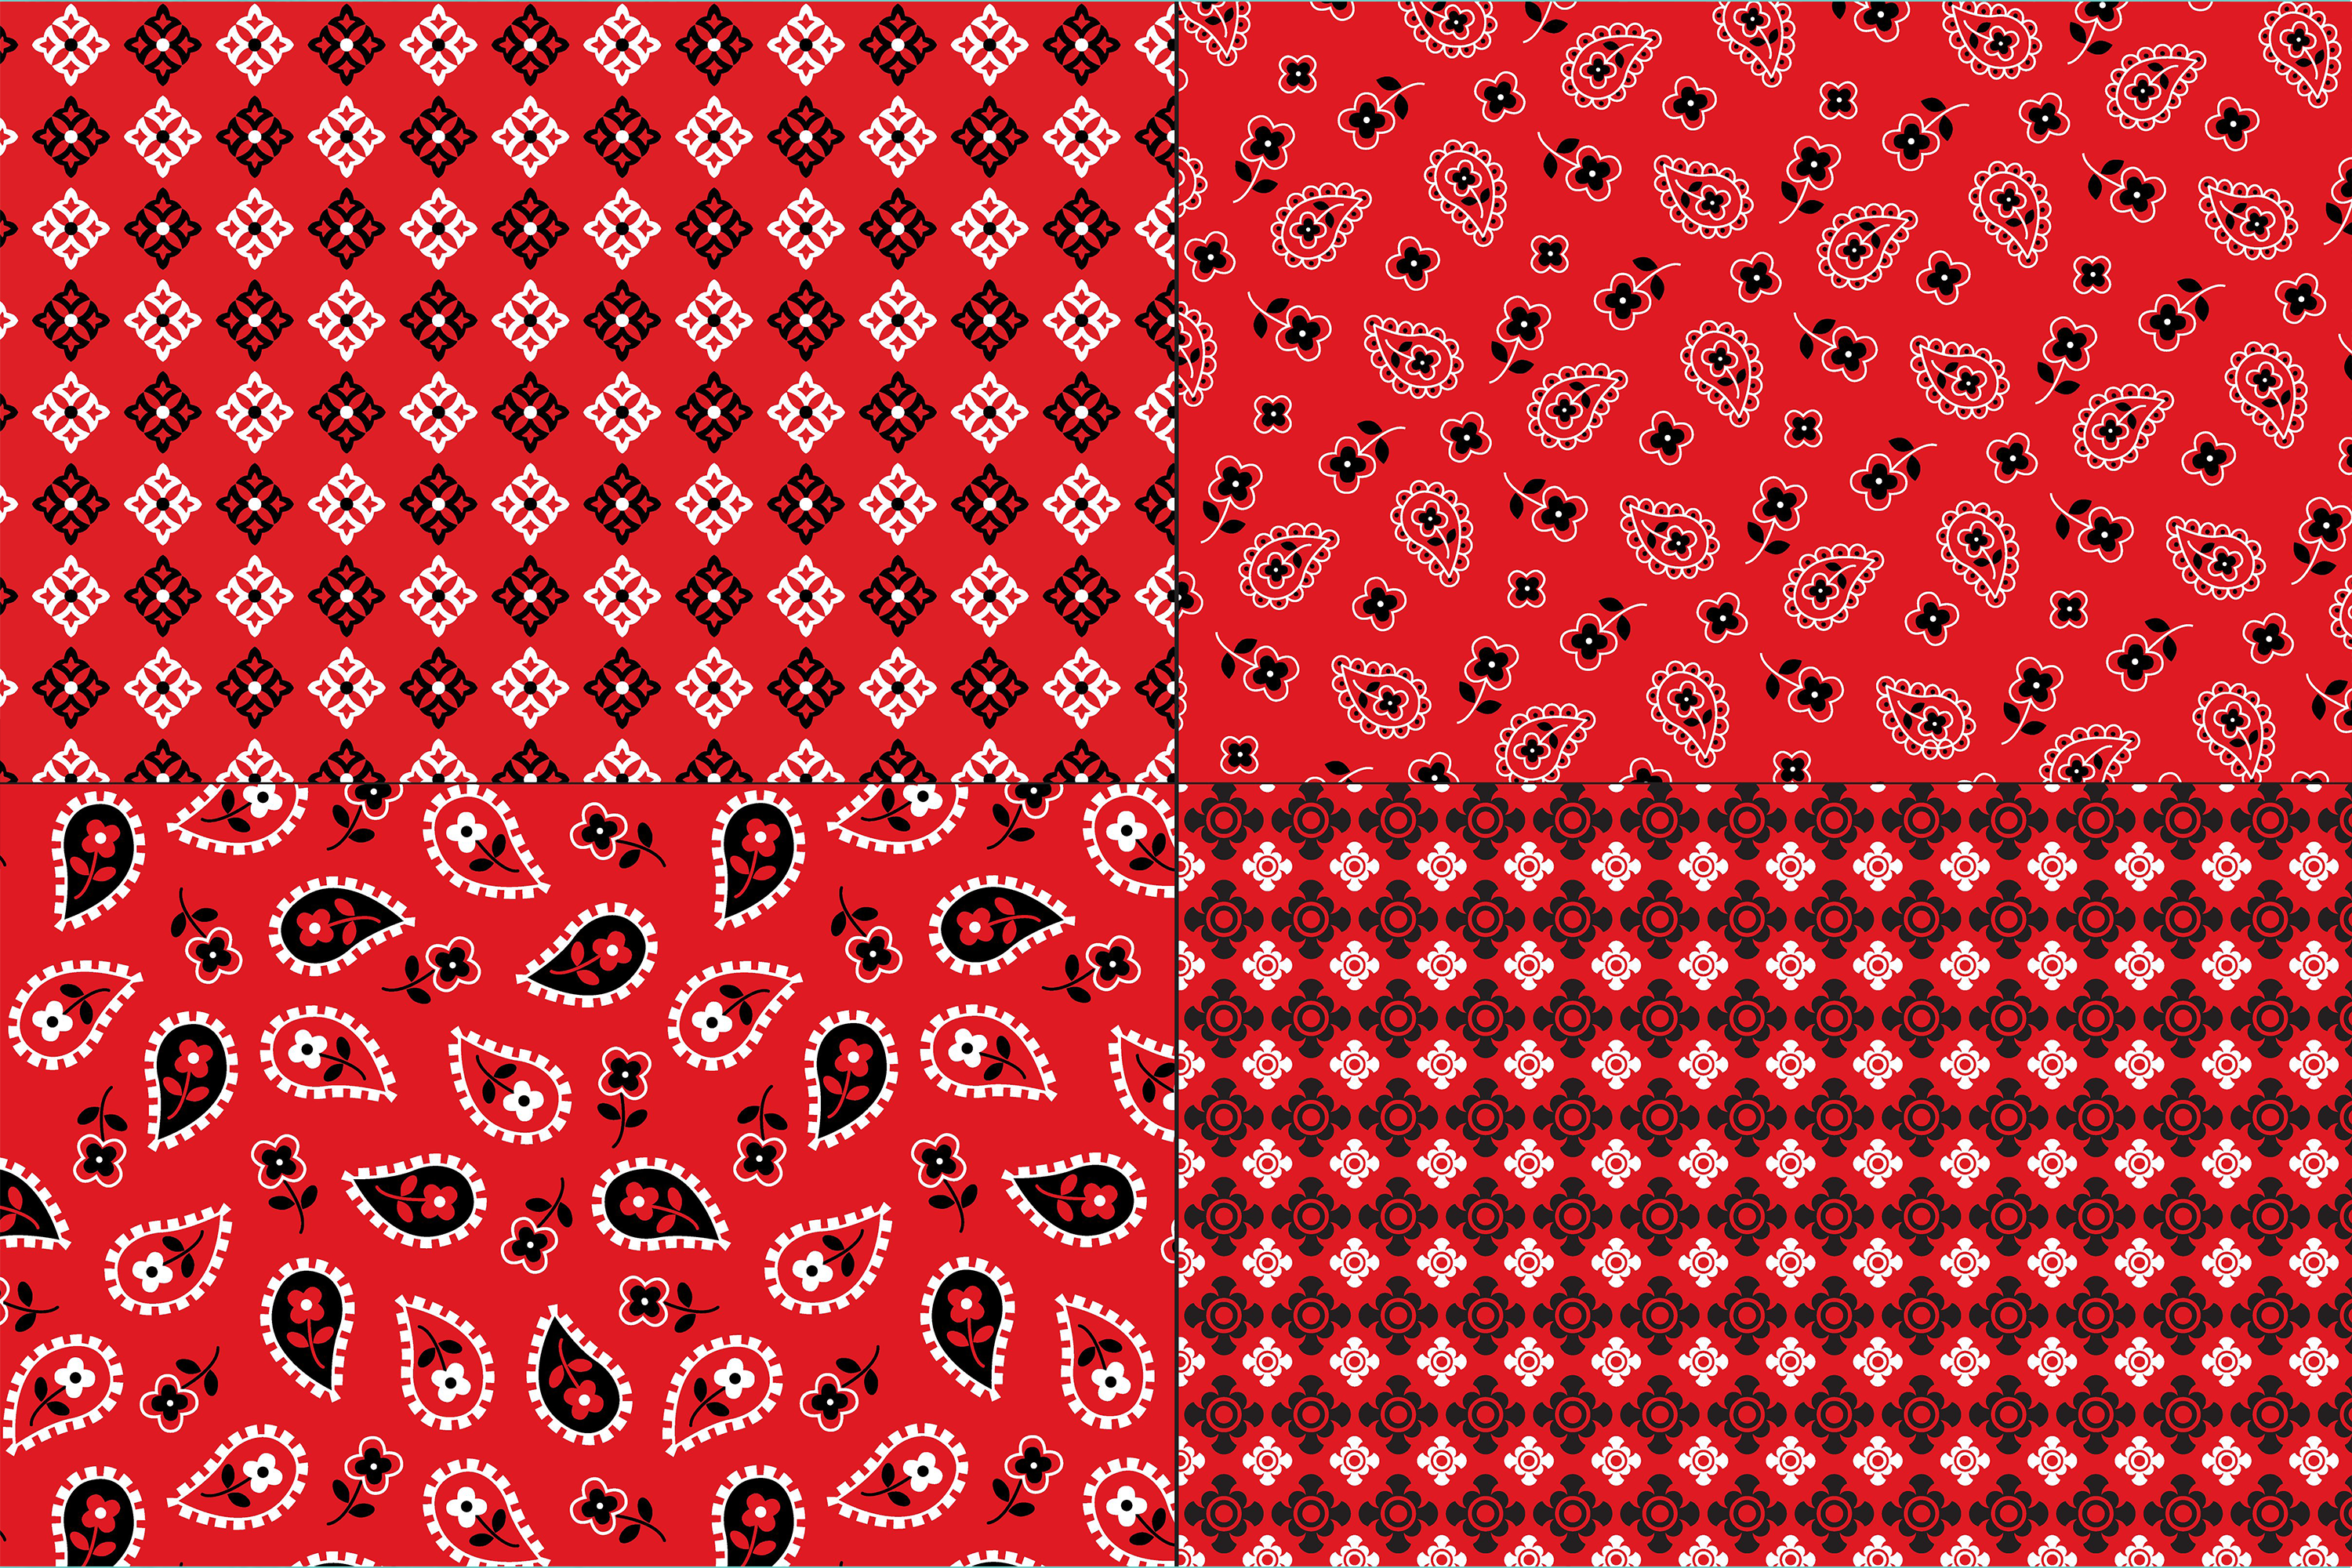 Red Bandana Patterns example image 2